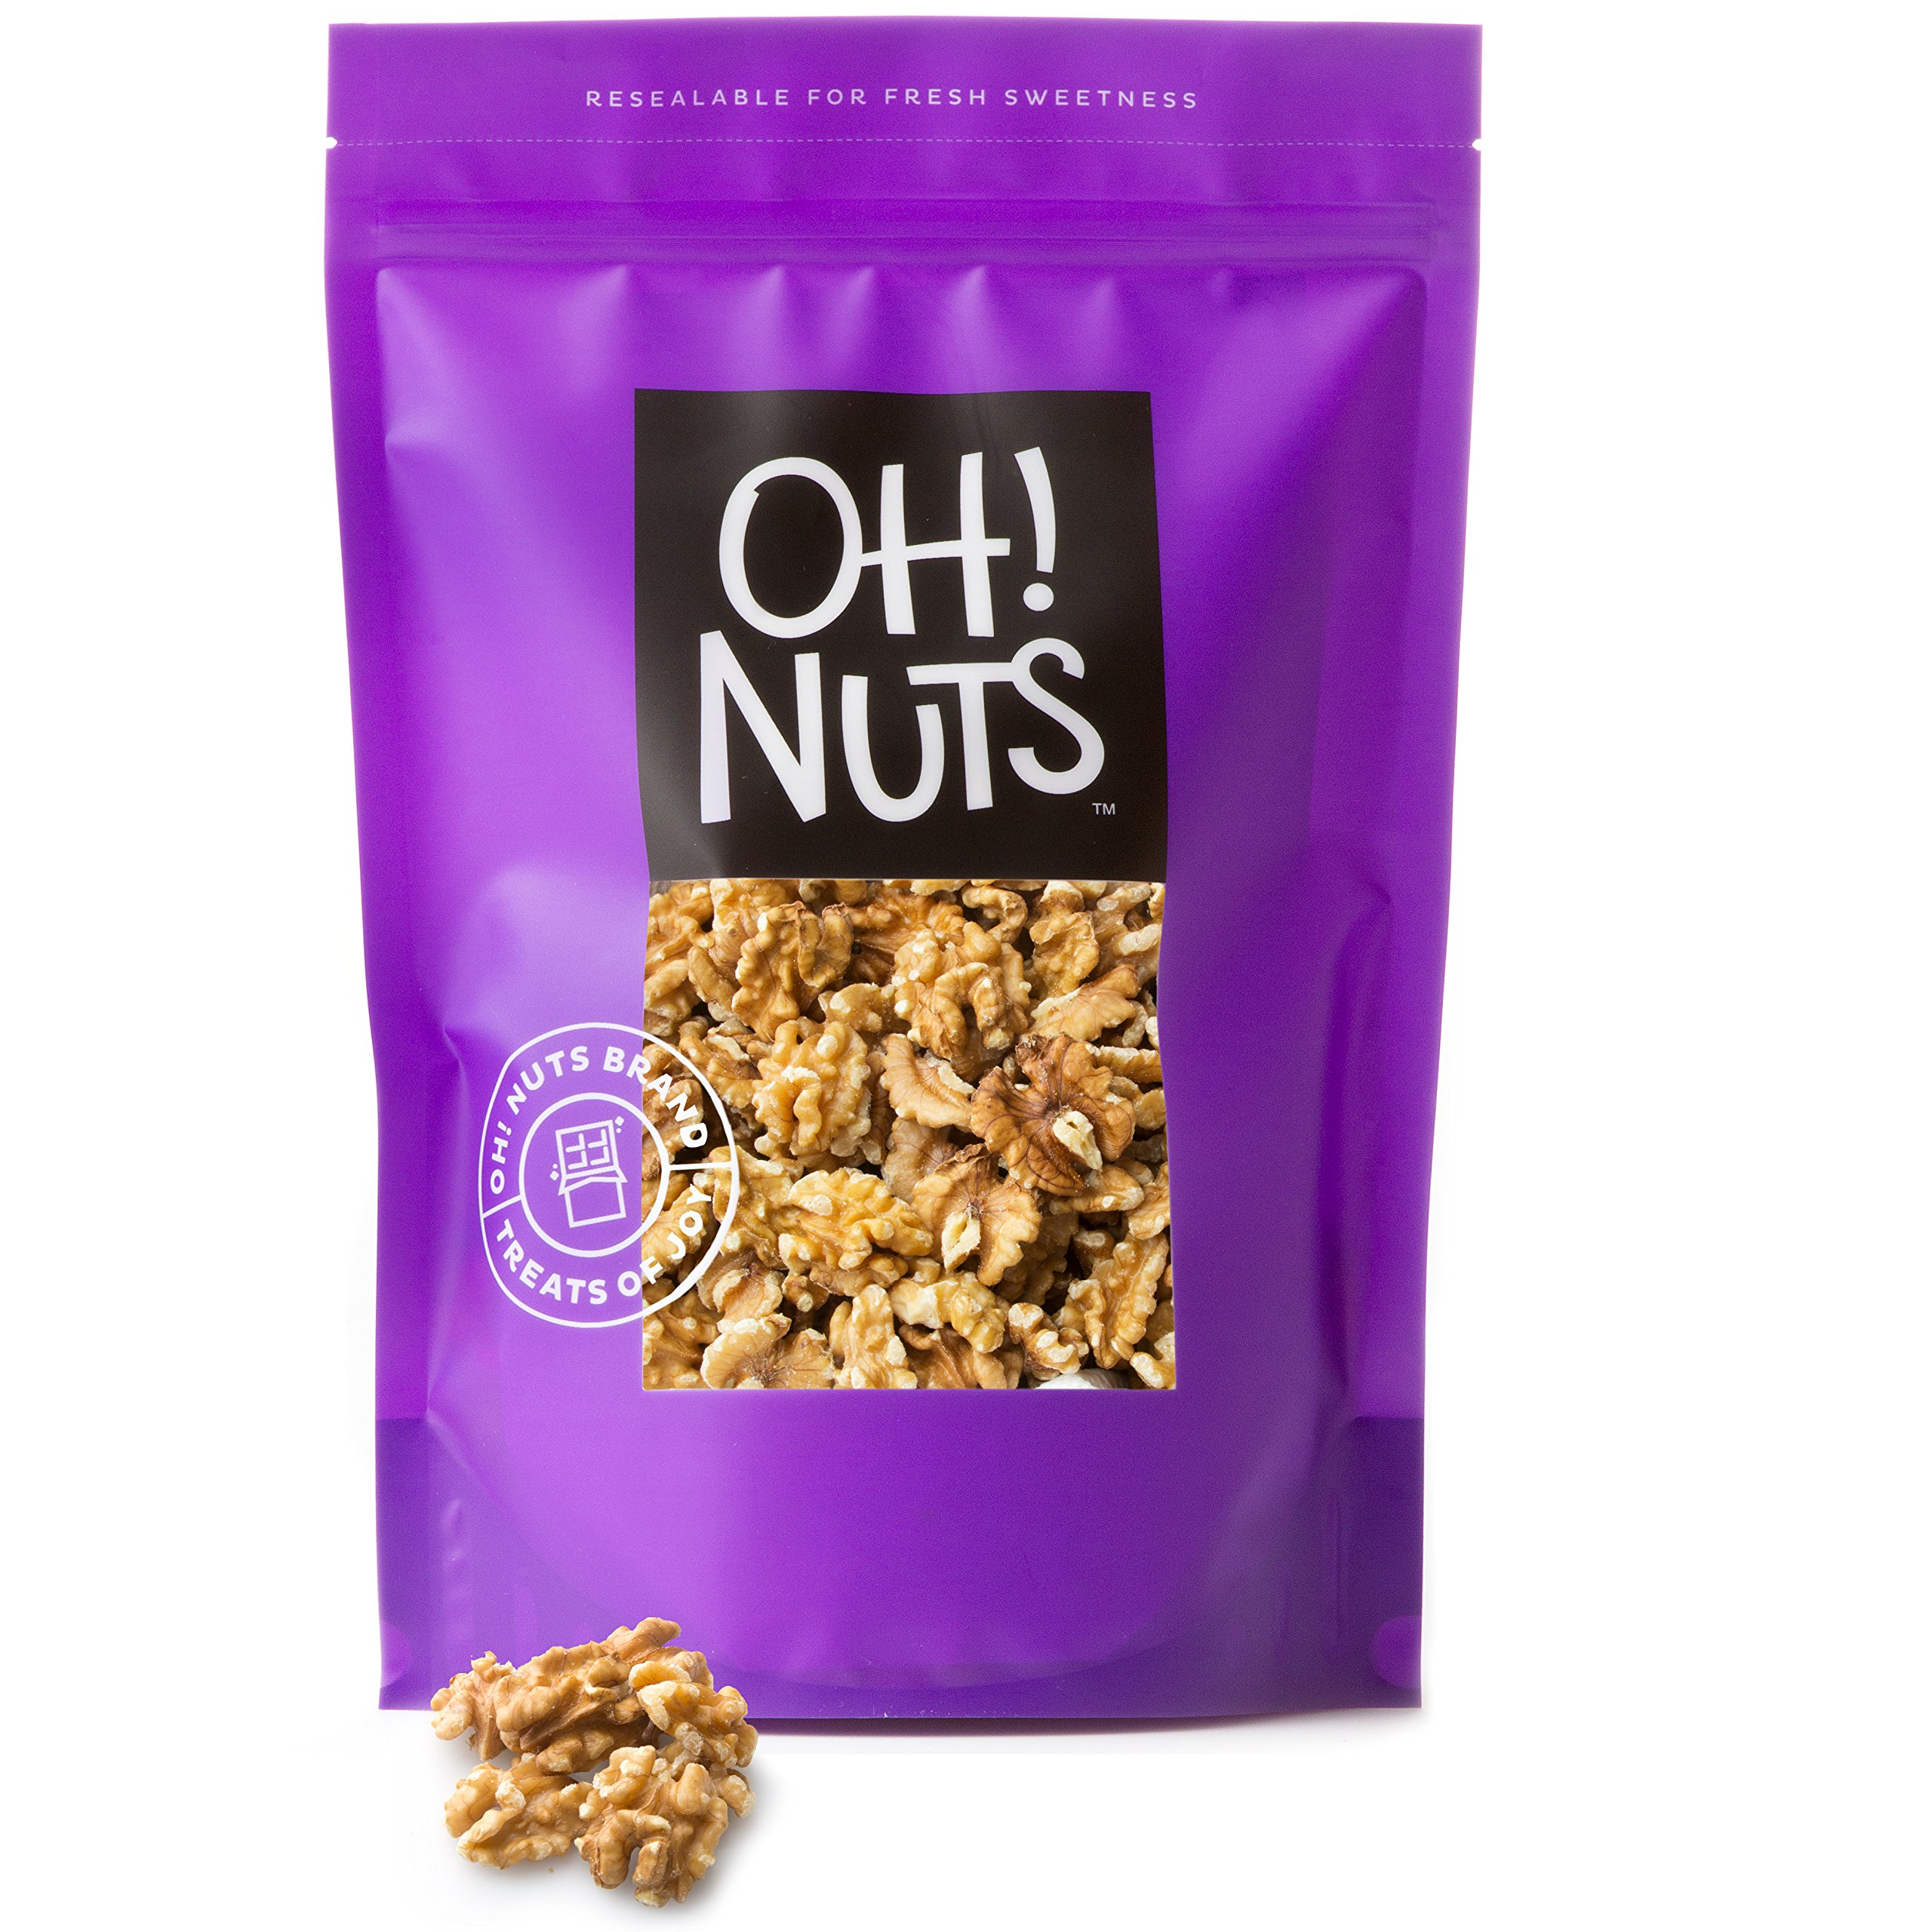 Raw Walnuts Halves and Pieces (5 Pounds) - Oh! Nuts by Oh! Nuts®